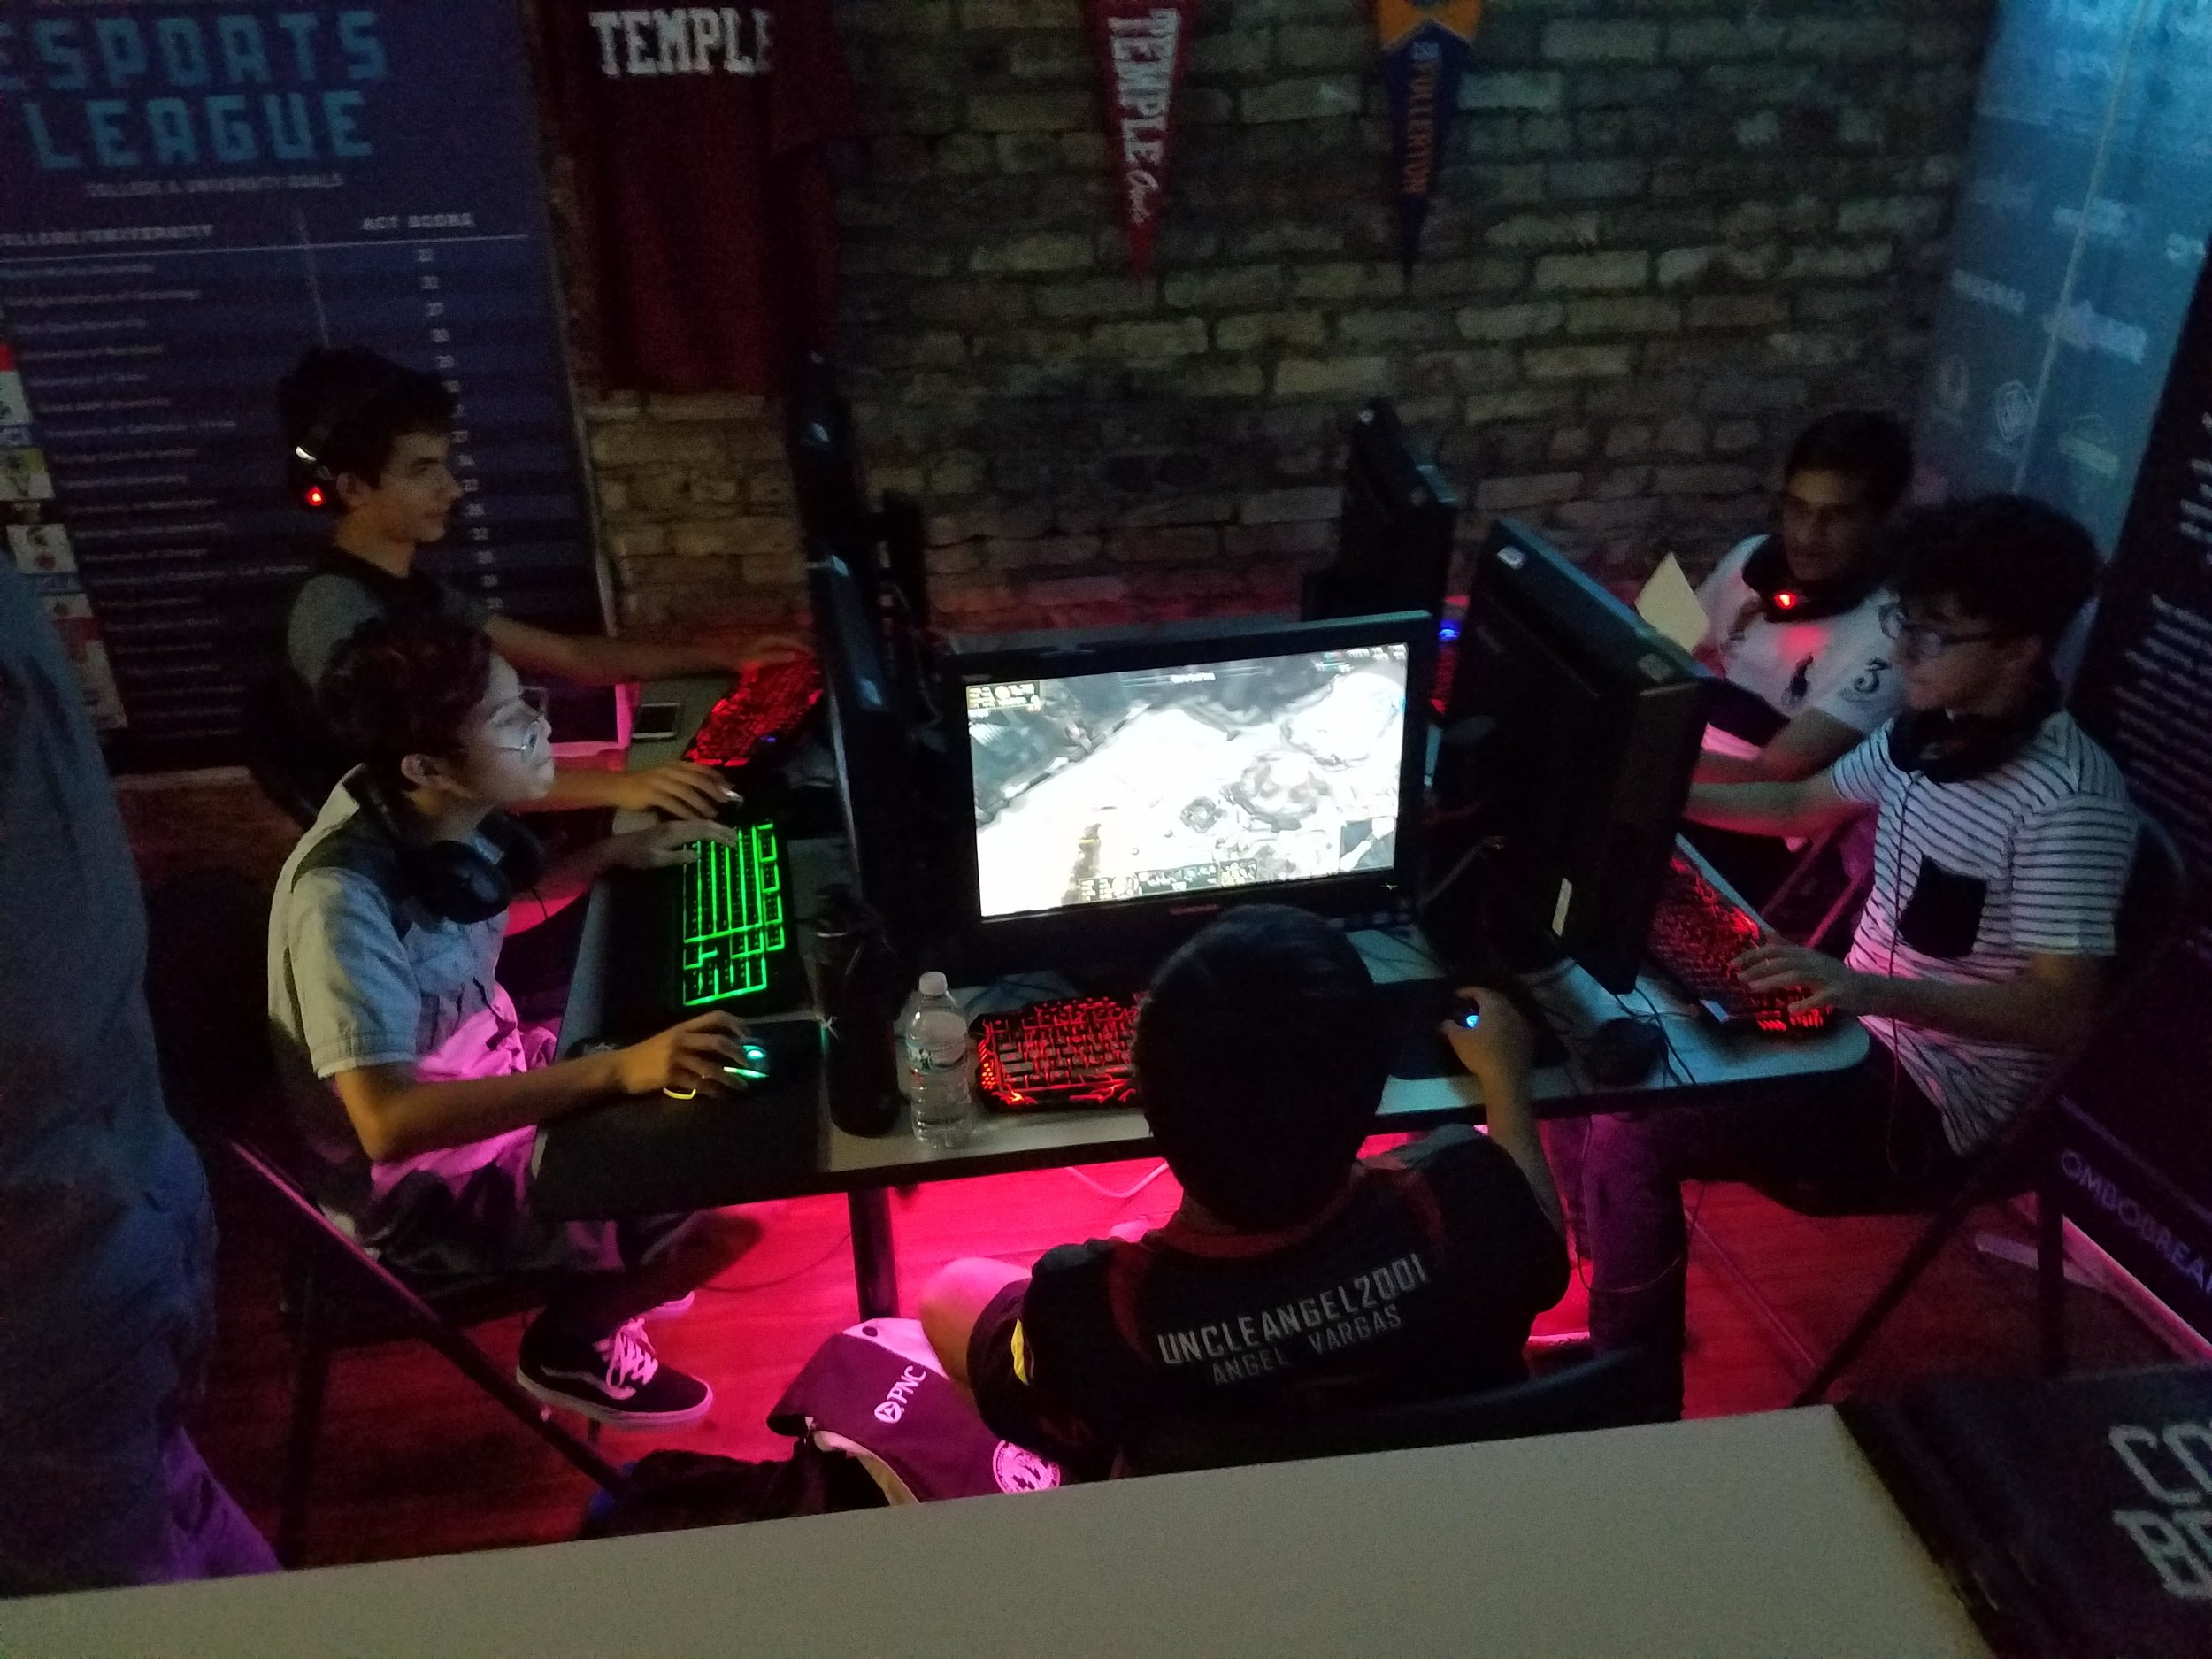 eSports Nebula - Their goal is to help eSport Players get recruited to the best colleges and teams, and assist colleges and teams to find the best talent and grow their program. They have coordinated with various universities to get donate equipment for our eSports equipment and Cosplay projects.